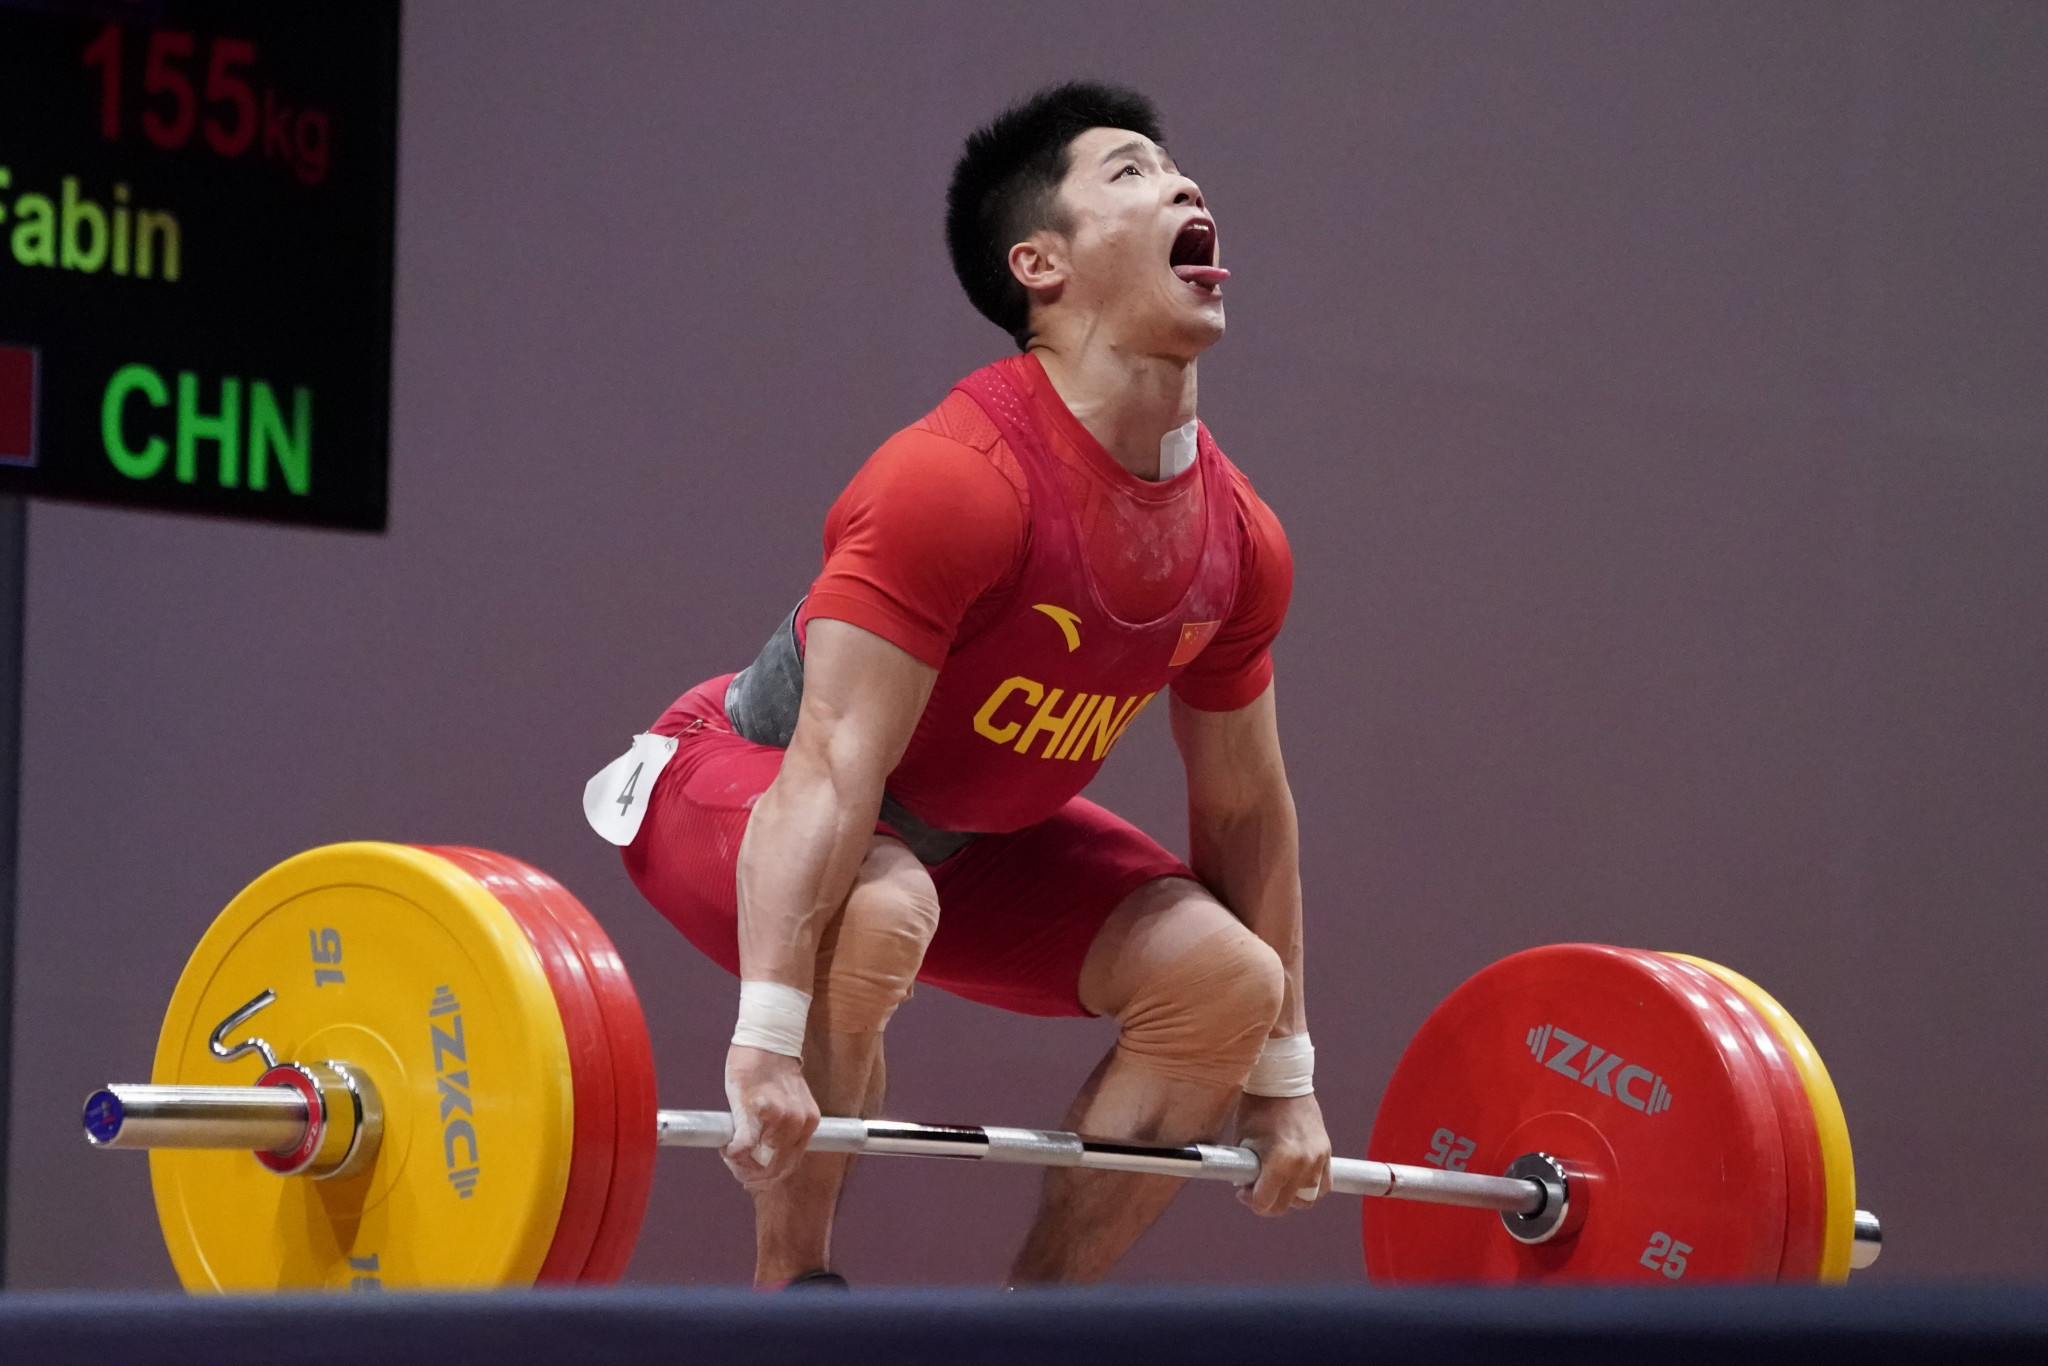 Li Fabin of China was a clear winner in the men's 61 kilograms category, but fell just short in his quest for a world record ©Getty Images